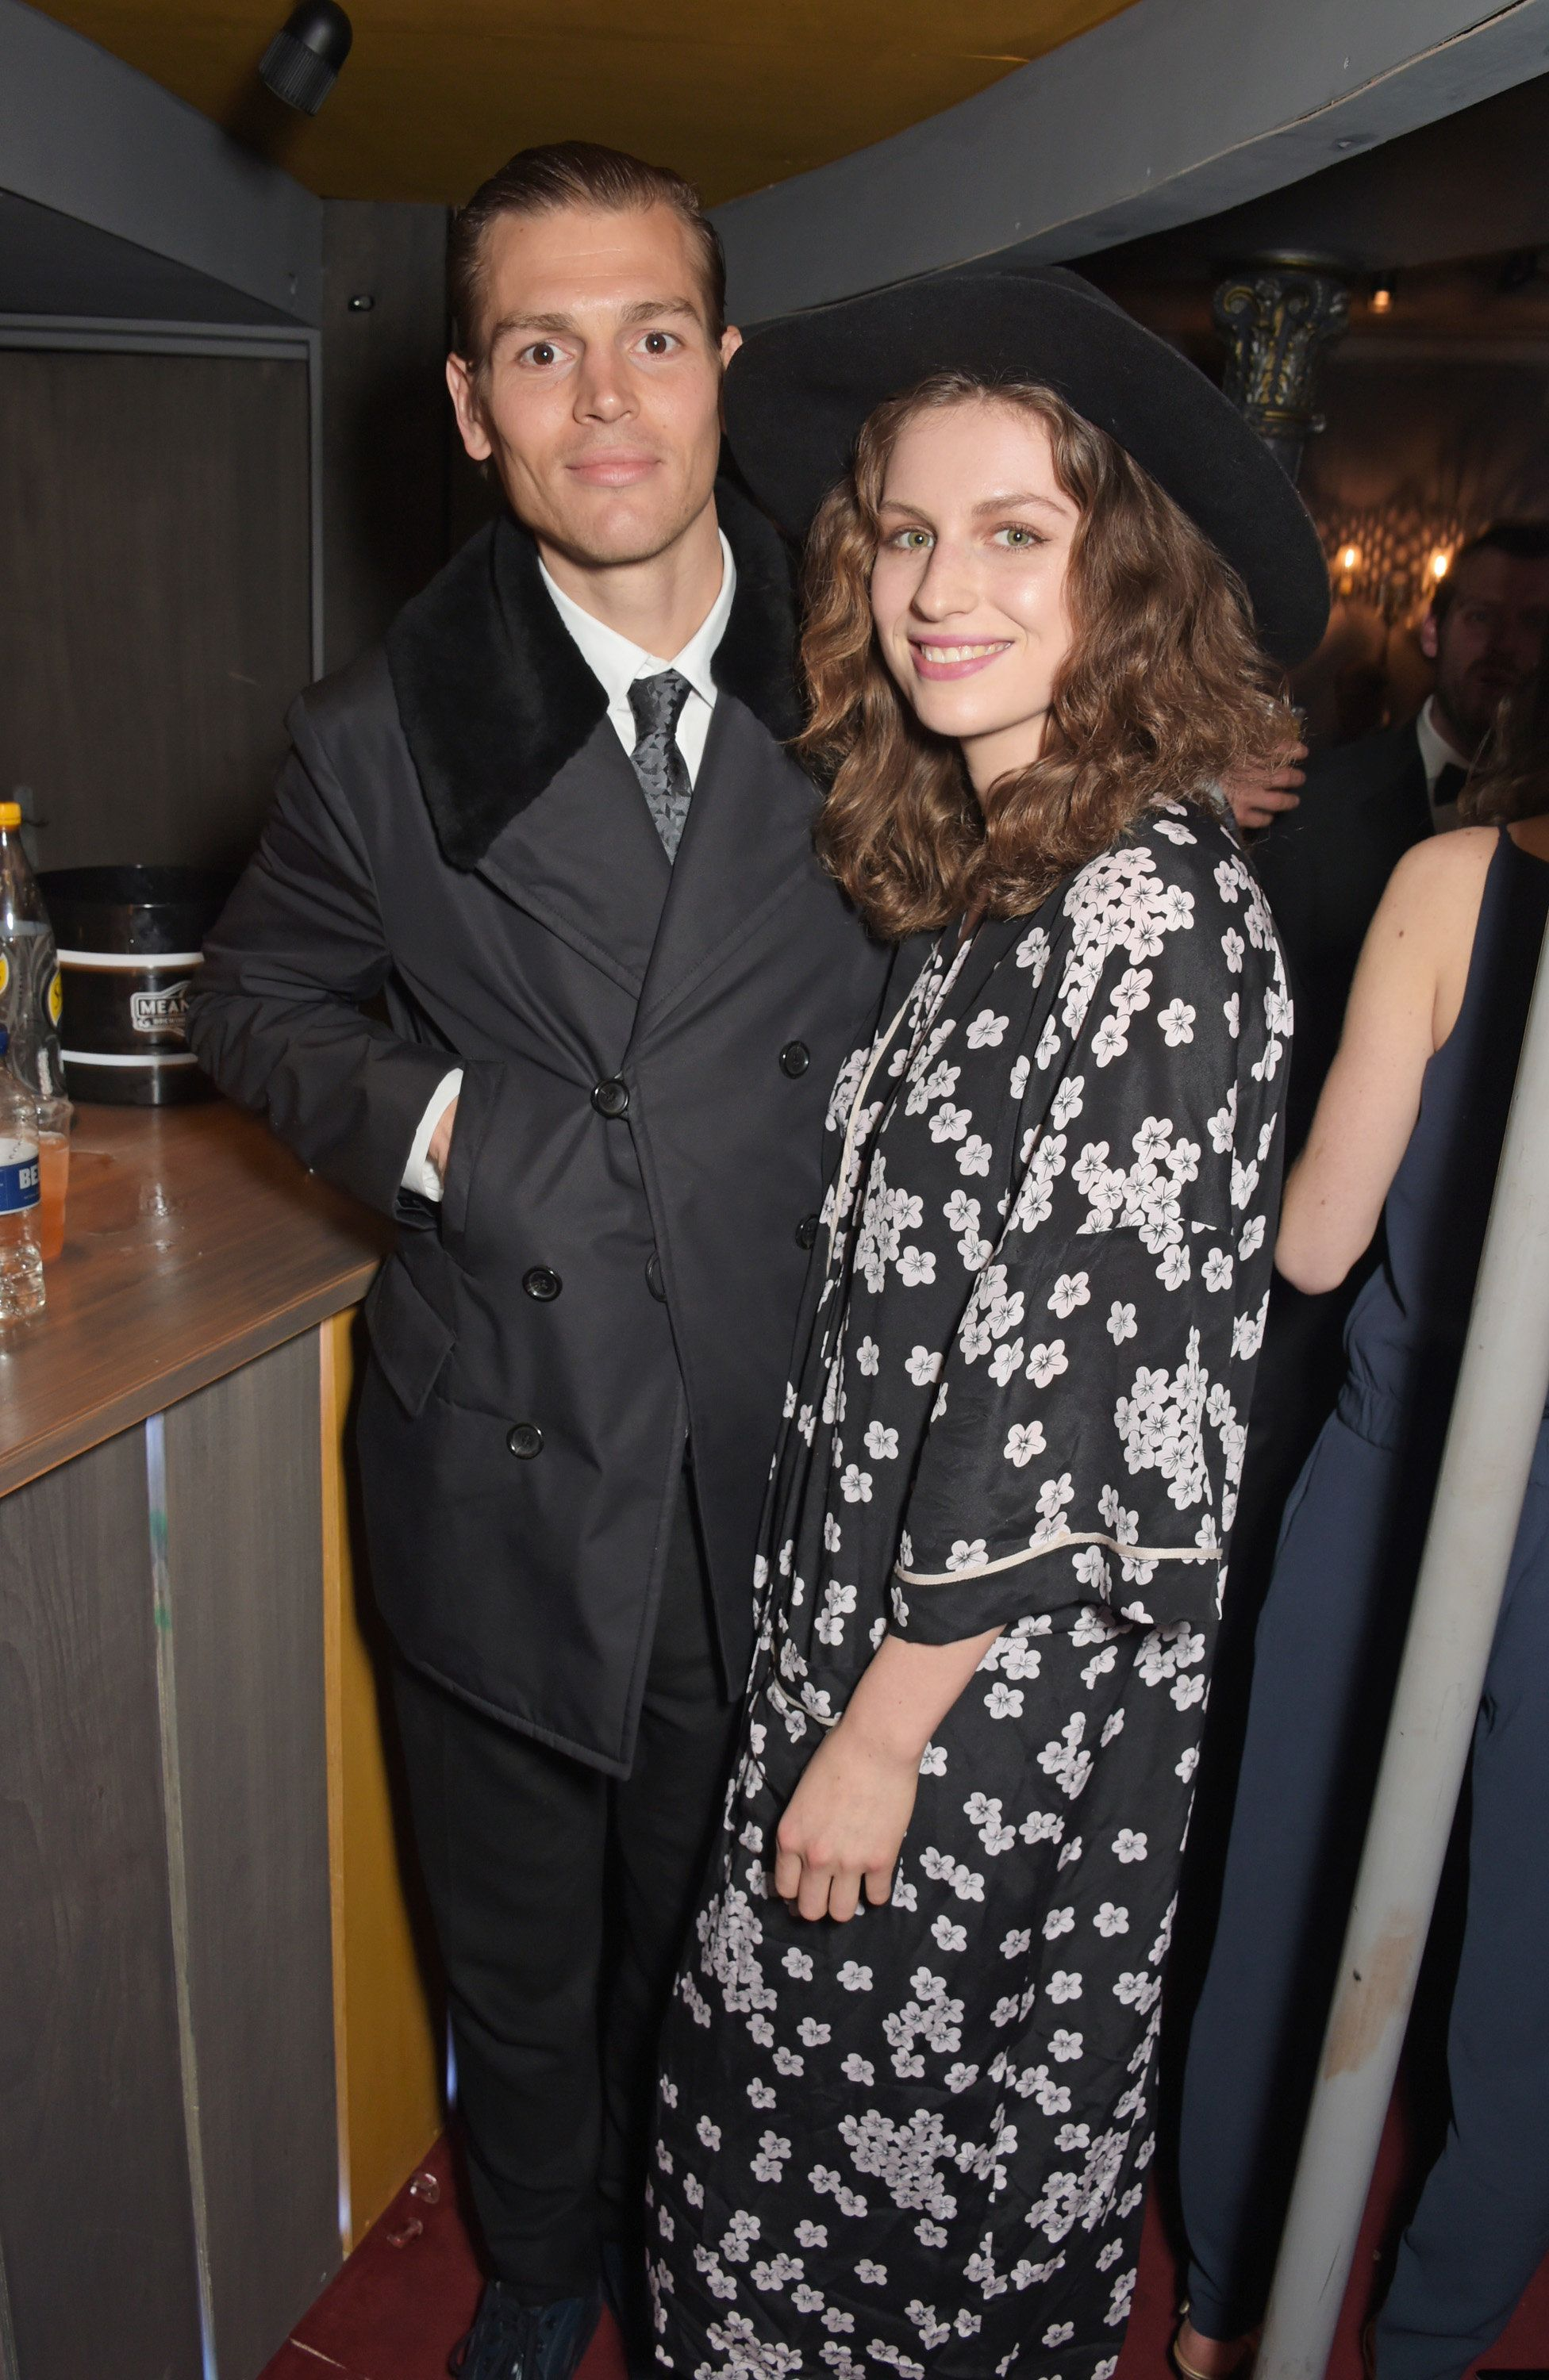 LONDON, ENGLAND - APRIL 19:  Tali Lennox (R) and Ian Jones attend The Old Vic for A Gala Celebration in Honour of Kevin Spacey as the artistic director's tenure comes to an end on April 19, 2015 in London, England.  (Photo by David M. Benett/Getty Images)